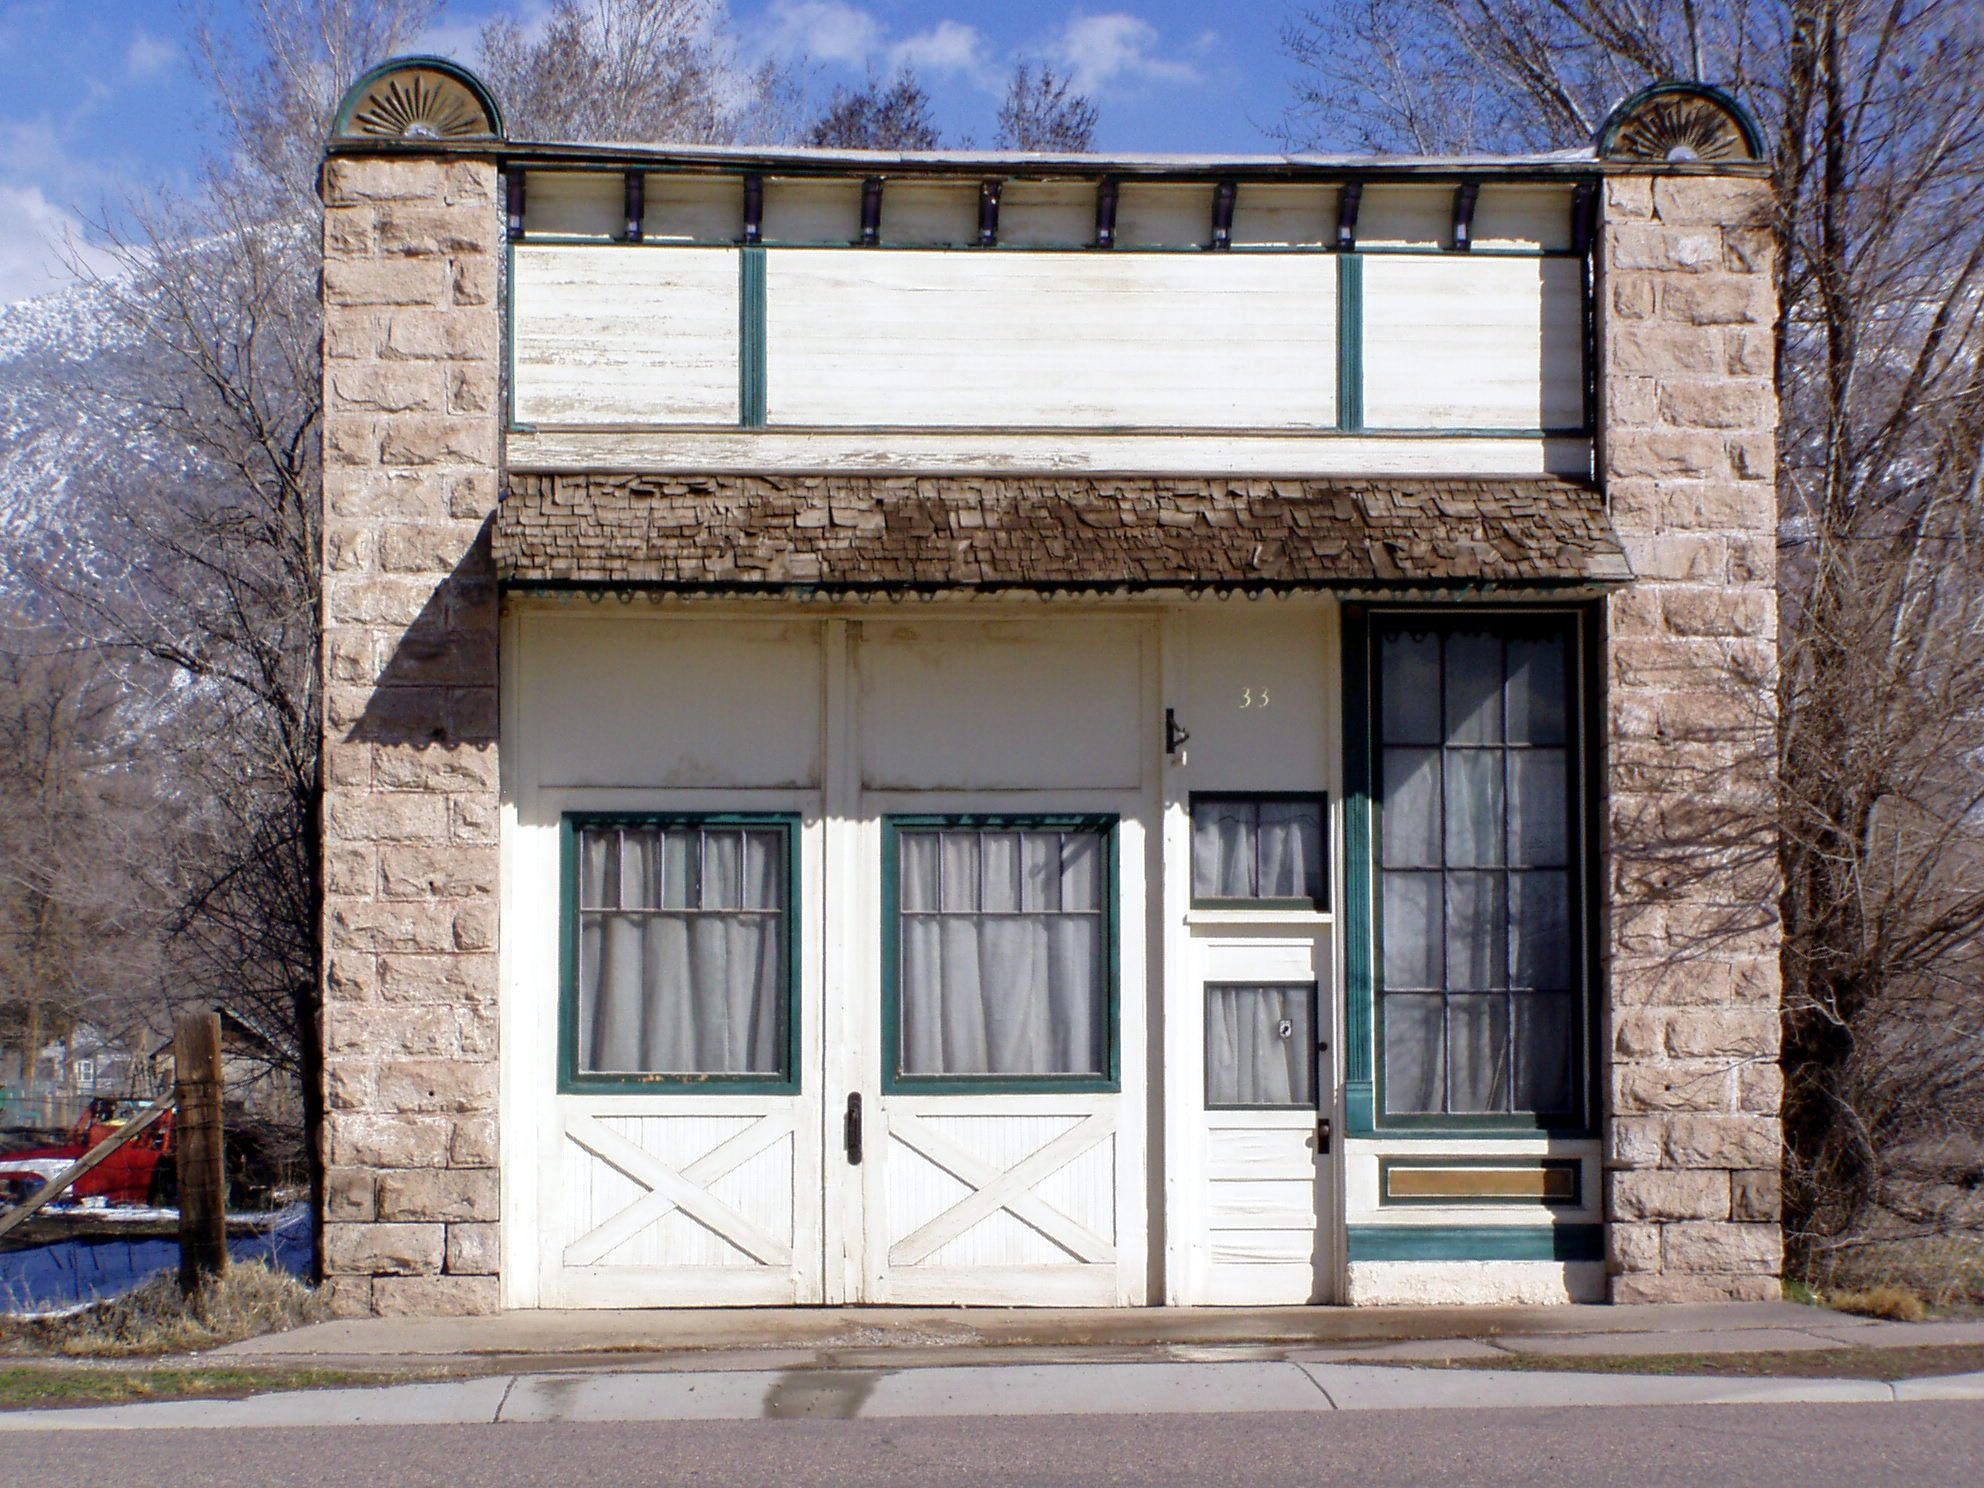 H O Magleby Furniture Store In Monroe Ut As It Is Today